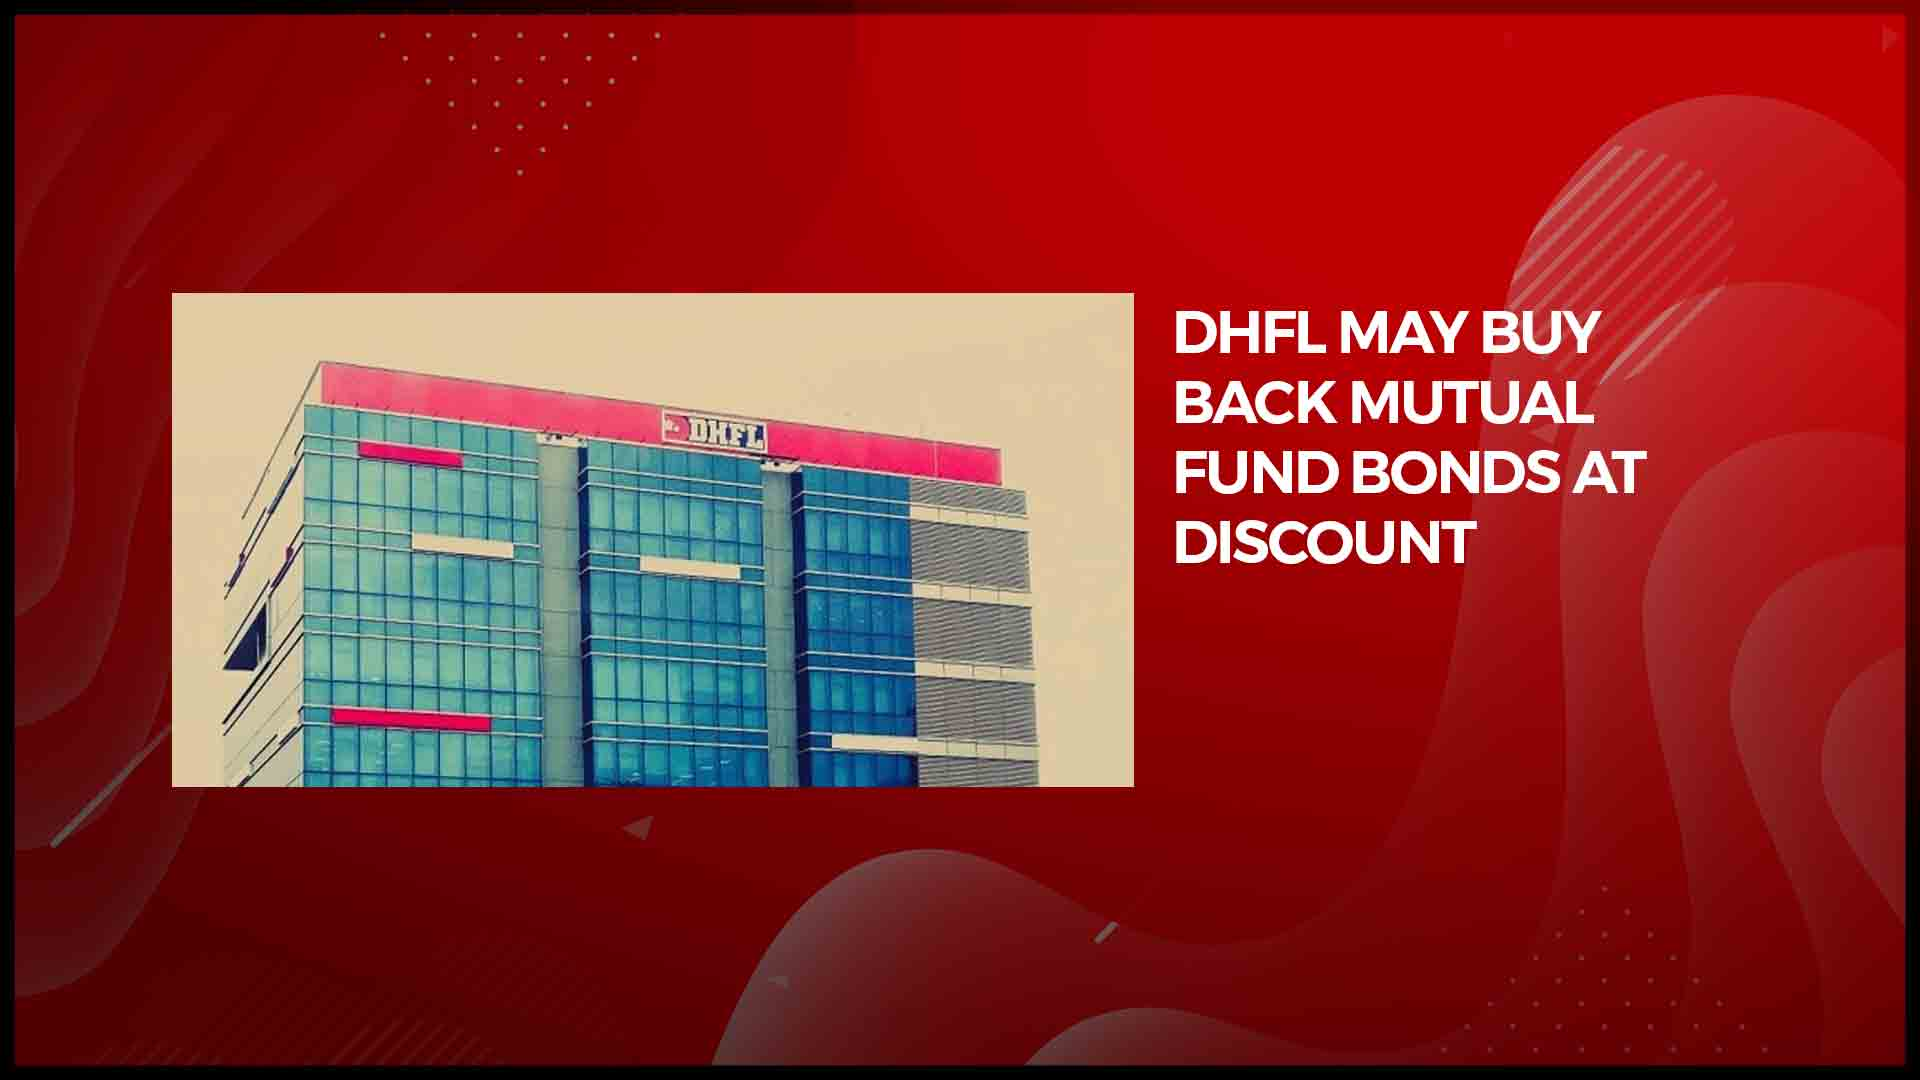 DHFL may buy back mutual fund bonds at discount